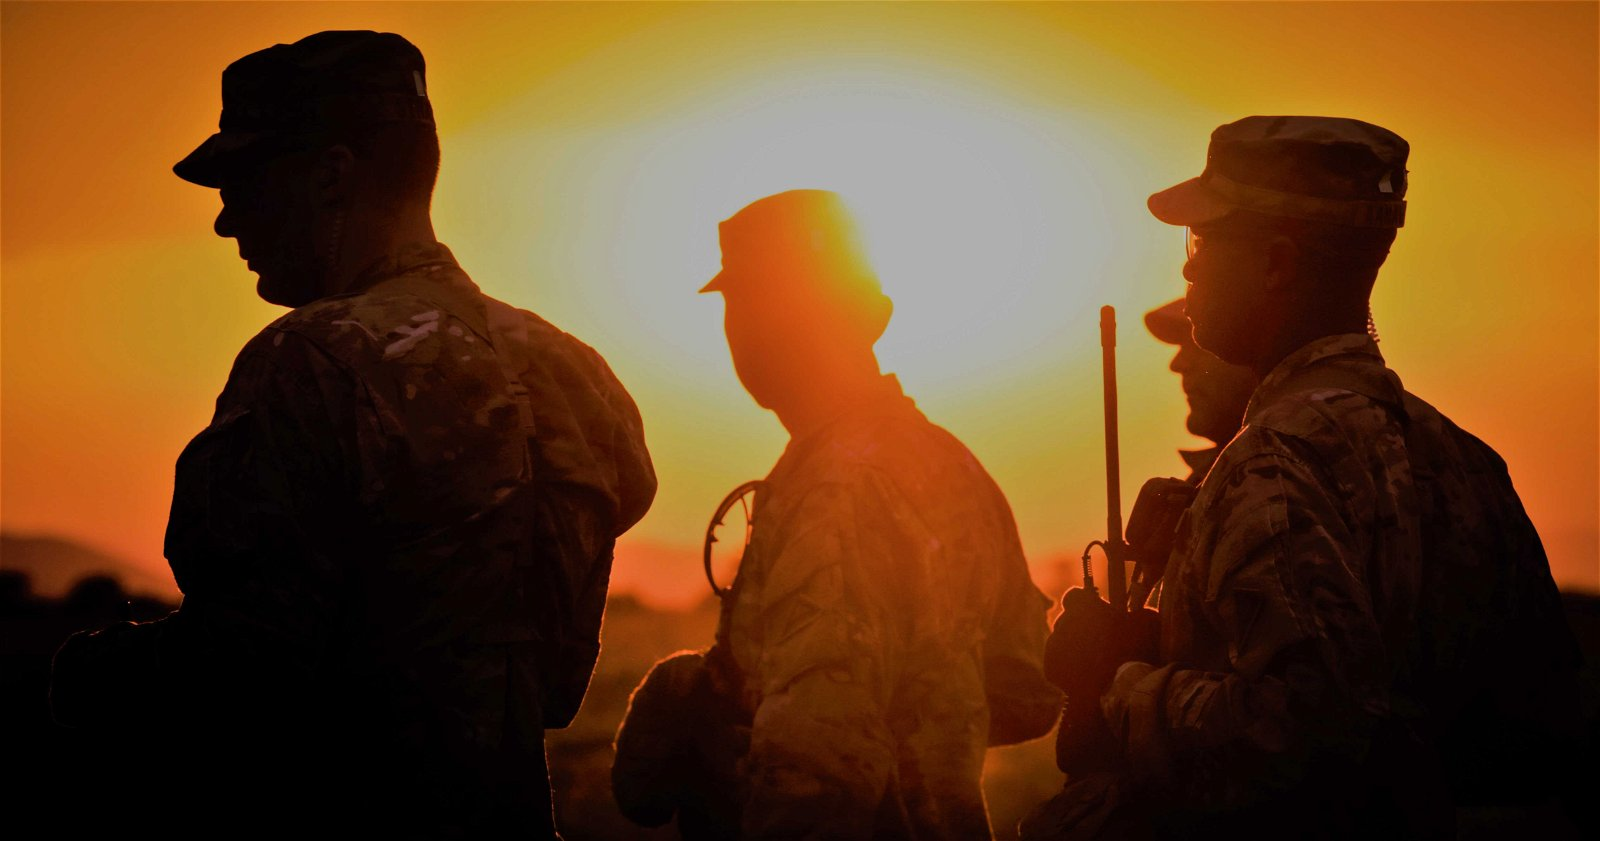 The Changing Landscape of PTSD